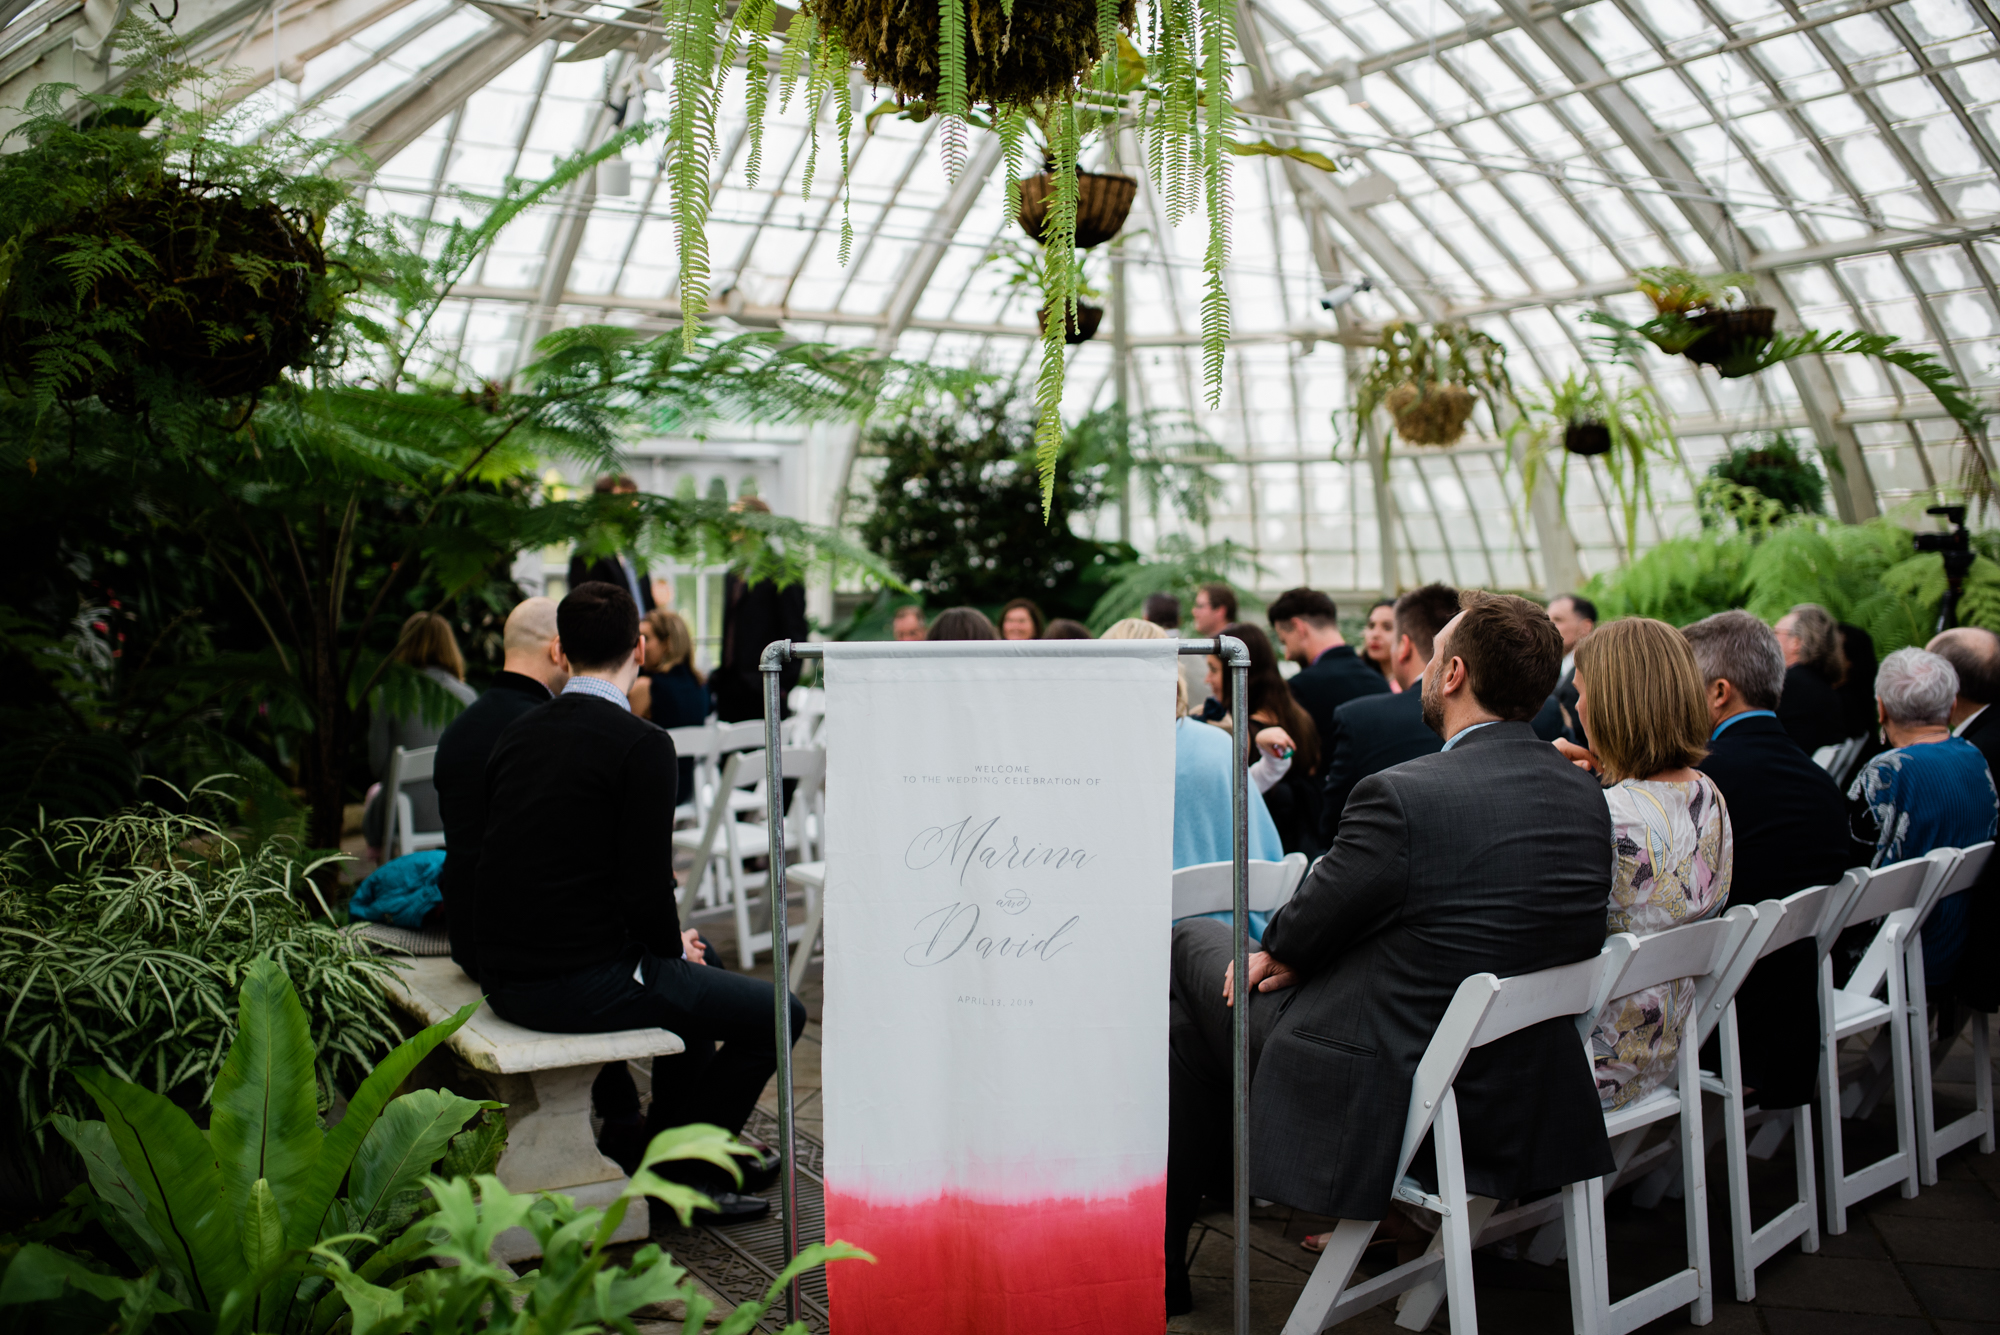 Conservatory_of_Flowers_San_Francisco_Wedding_019.jpg